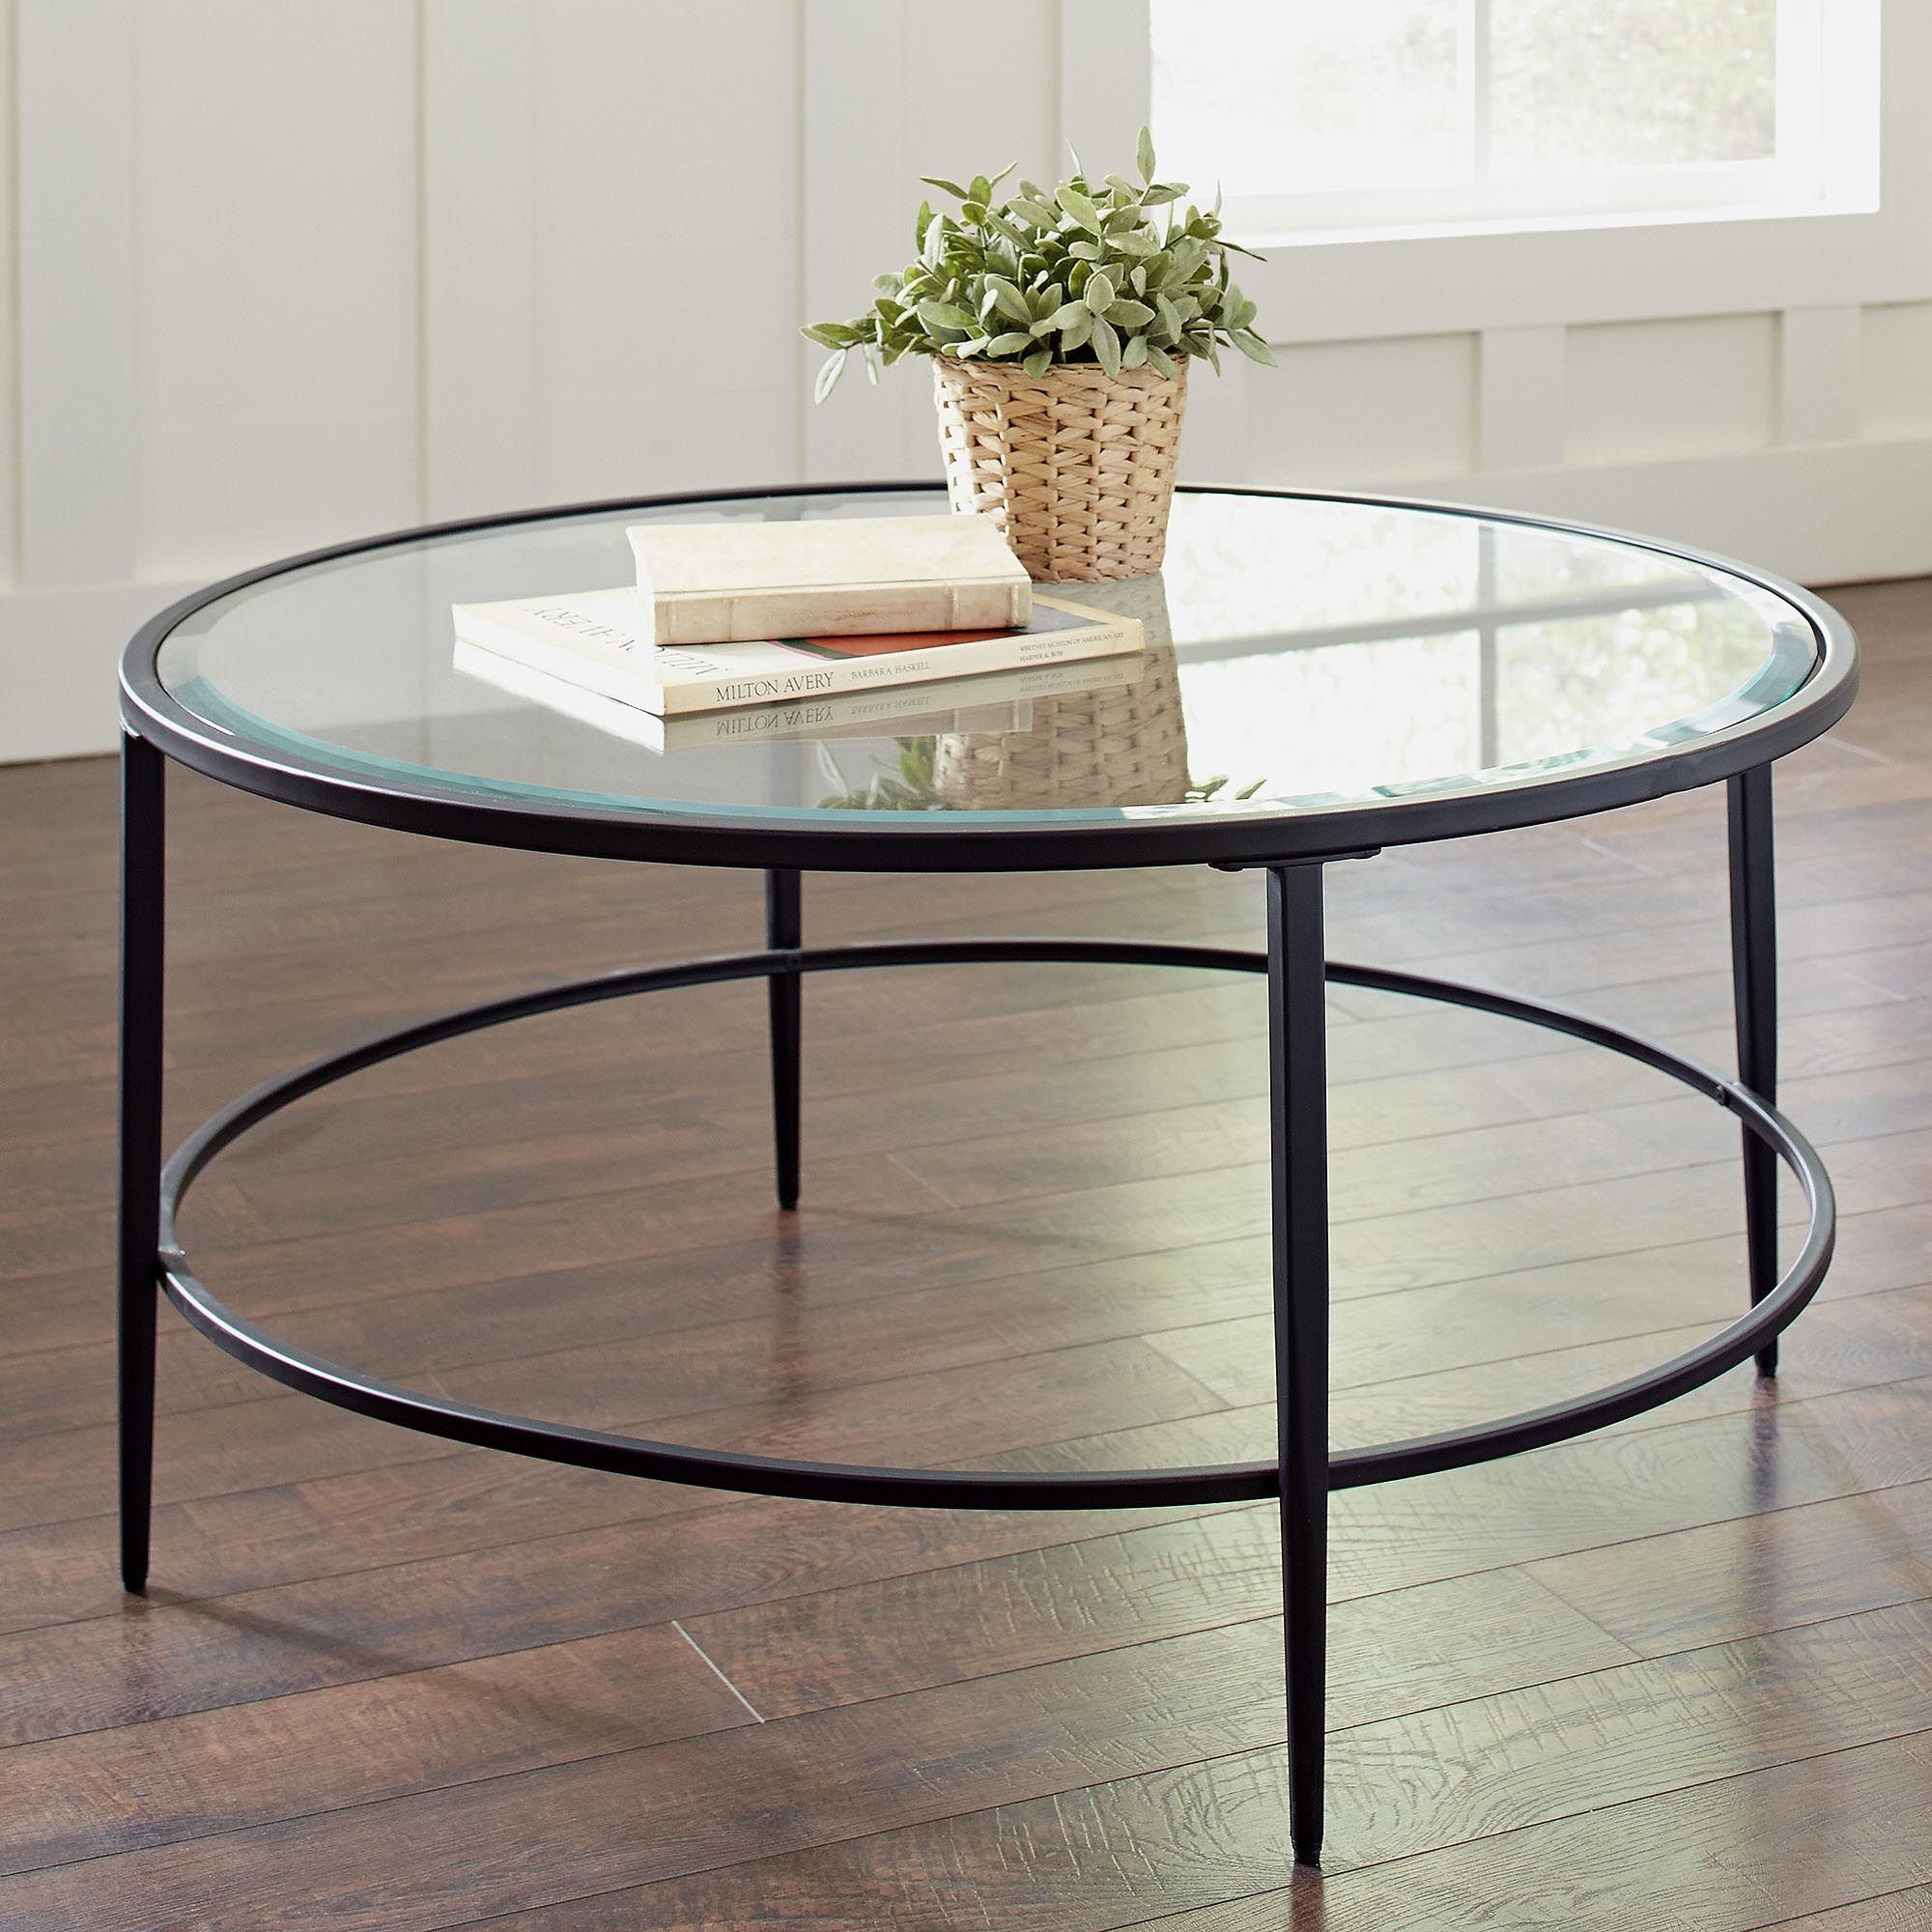 Glass Circle Coffee Table Circle Coffee Tables Round Glass Coffee Table Round Coffee Table